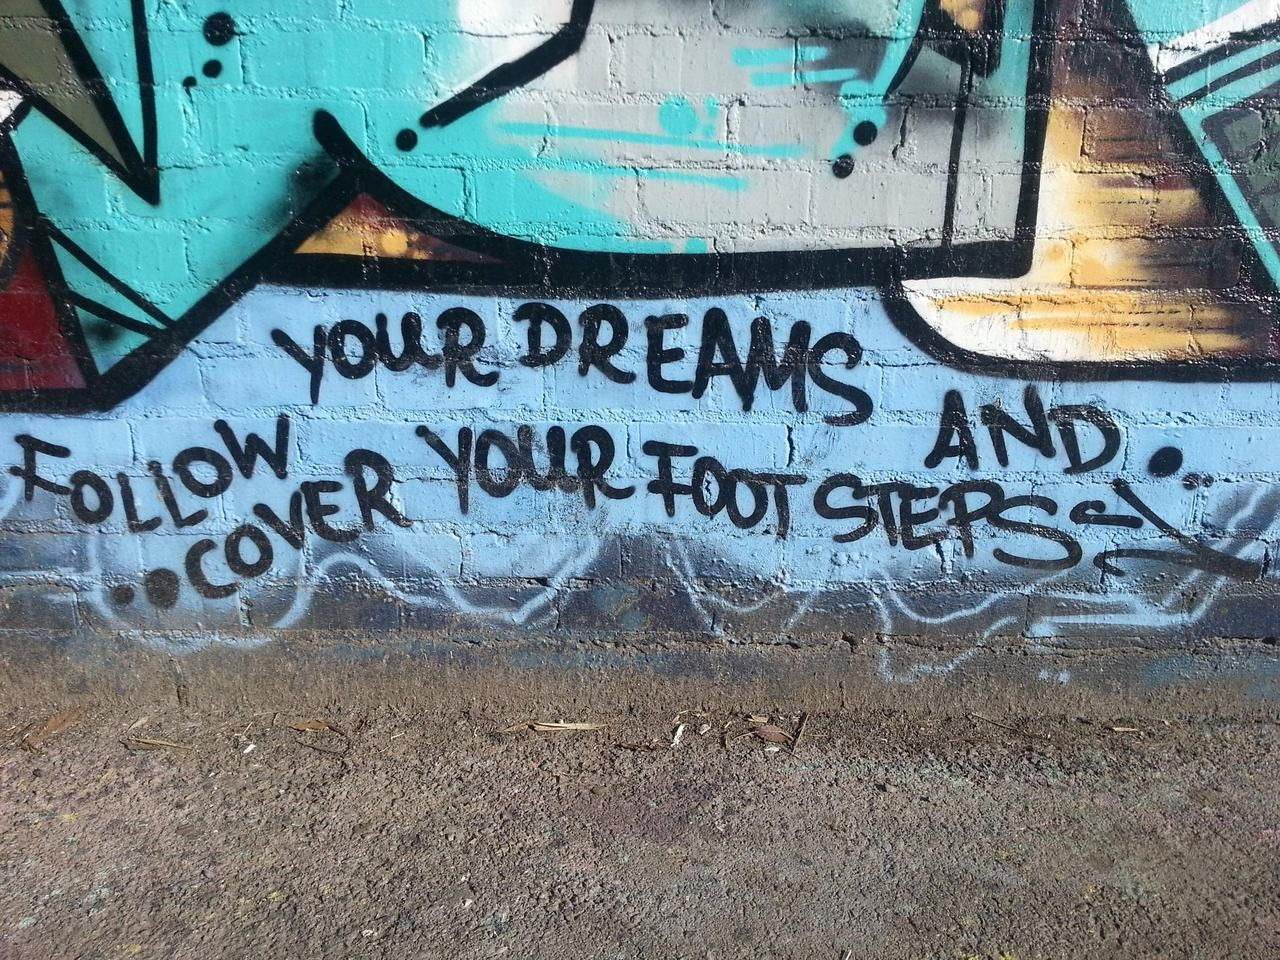 Follow your dreams and cover your footsteps